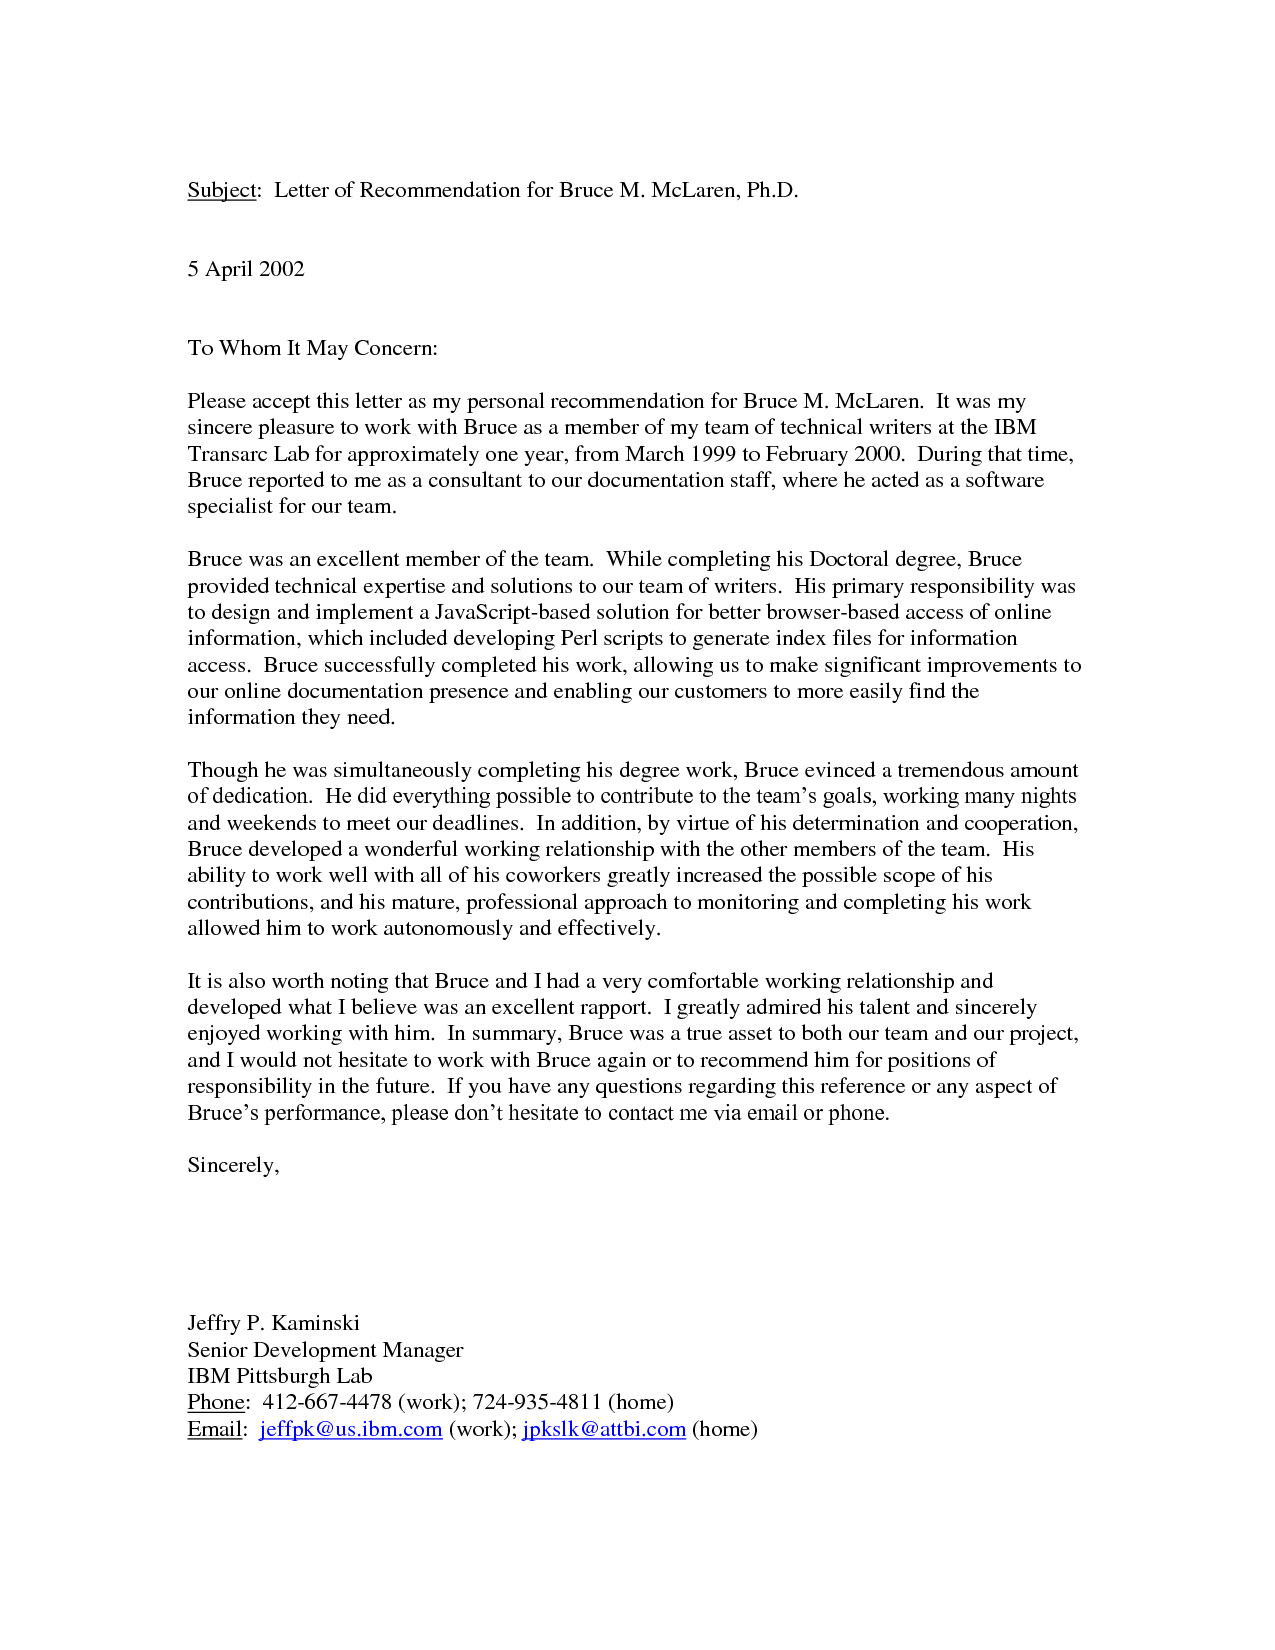 Personal Recommendation Letter Template Personal Letter Re Mendation